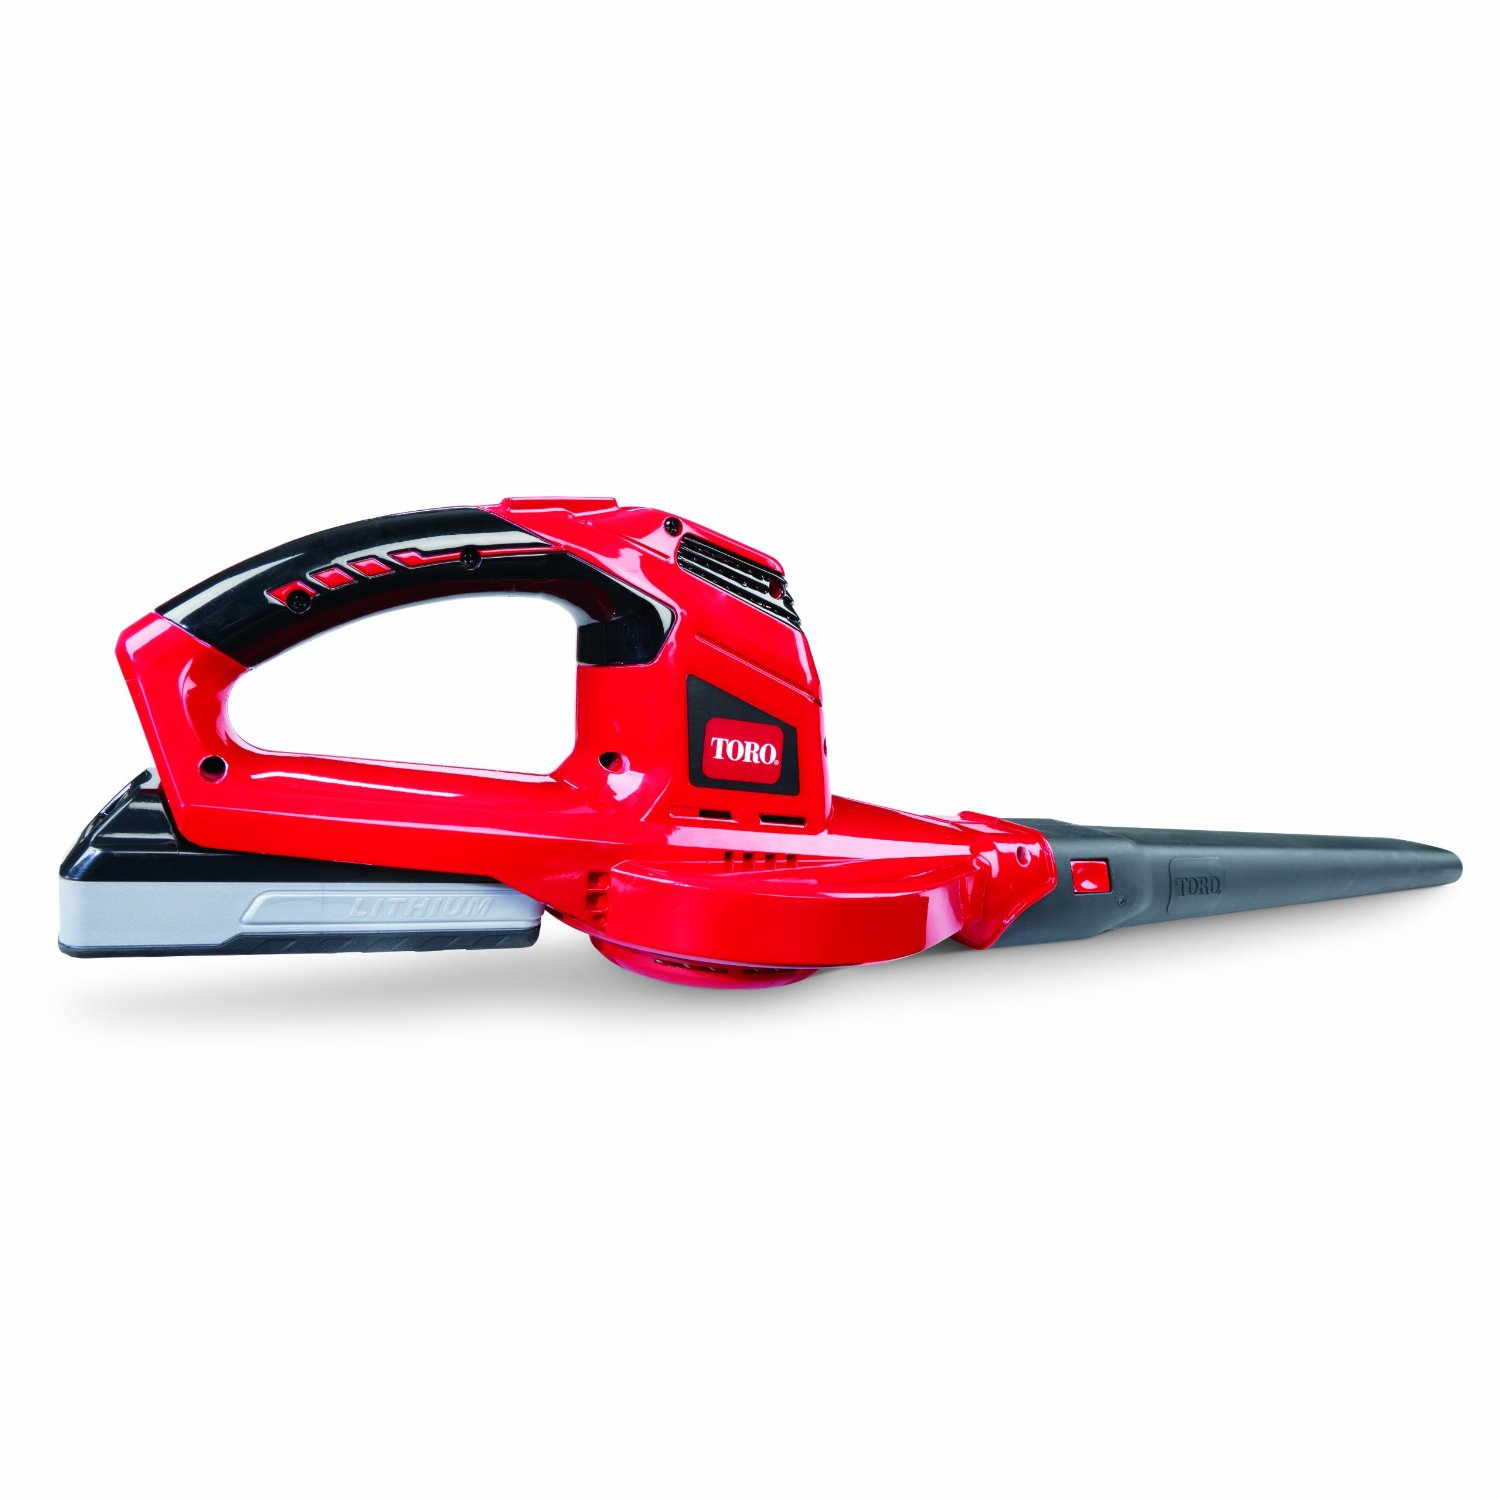 Blower Vac 51592 It Is The Only Toro Electric Blower Vac To Offer A  #C90214